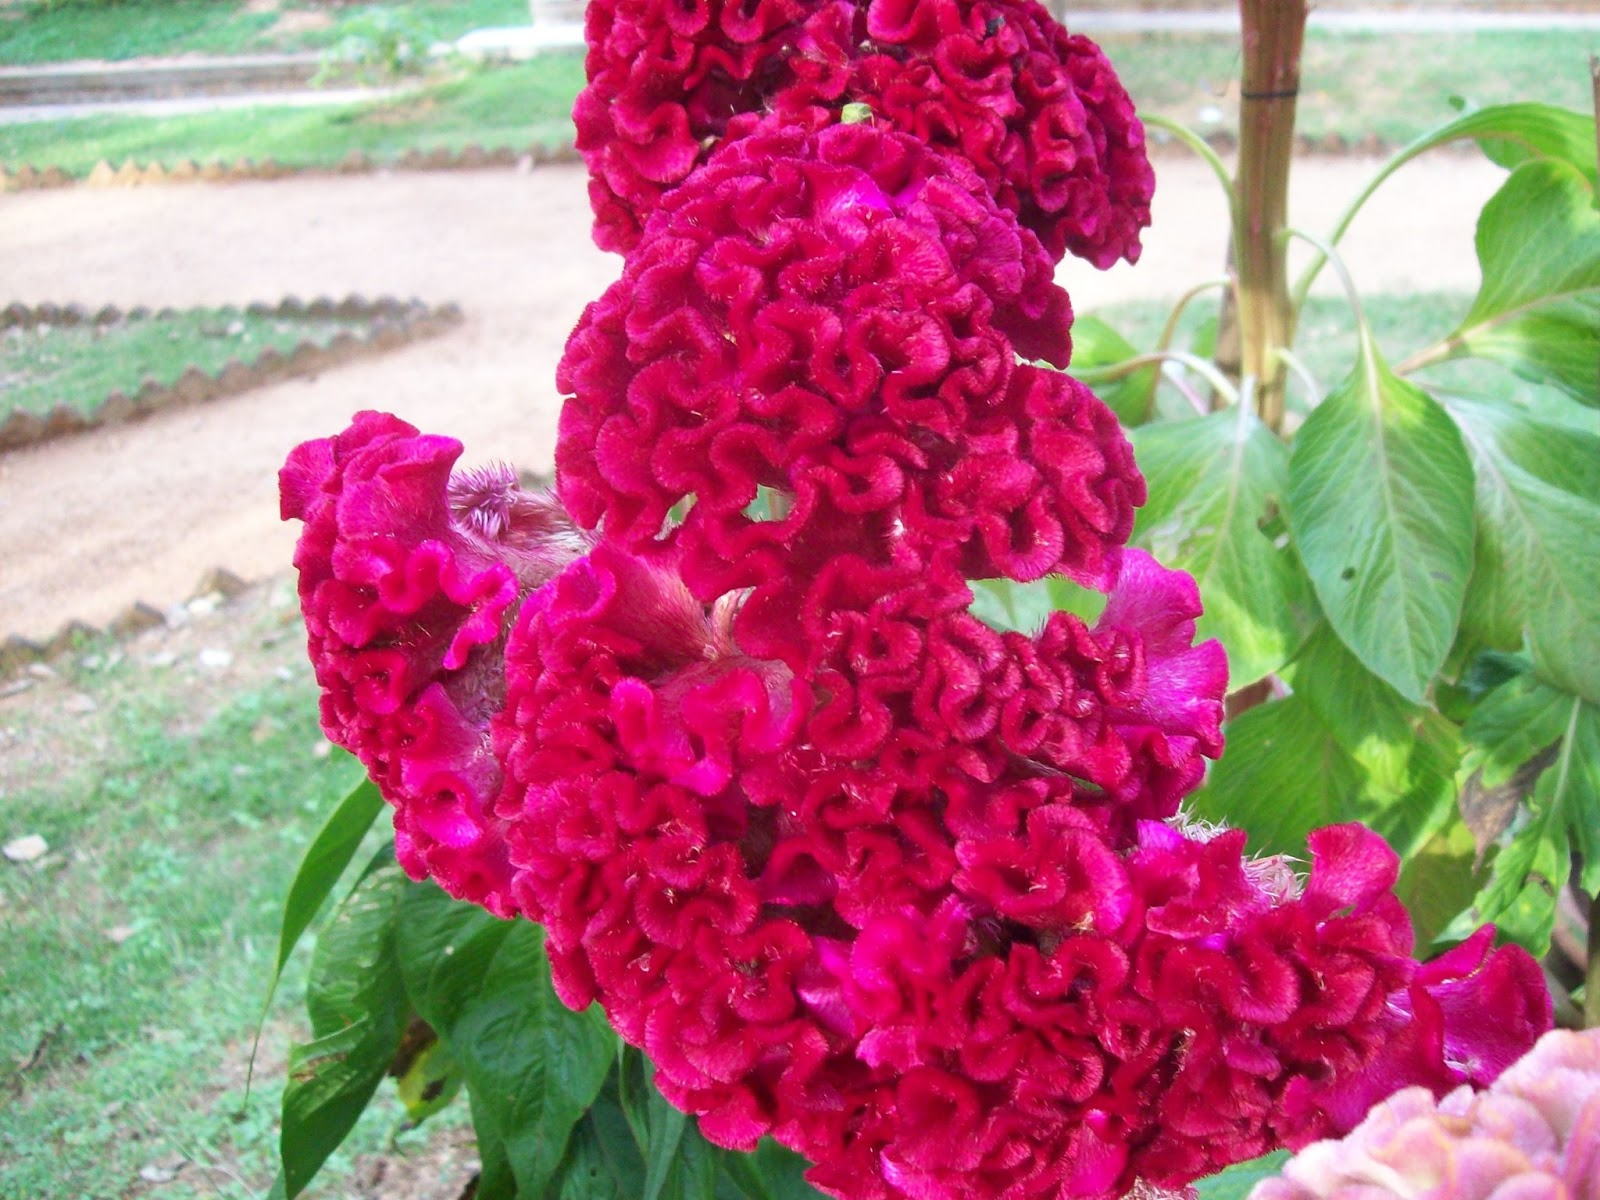 Gardentropics todays flowers this is my contribution to todays flowers which showcases beautiful flowers from all over the world izmirmasajfo Images